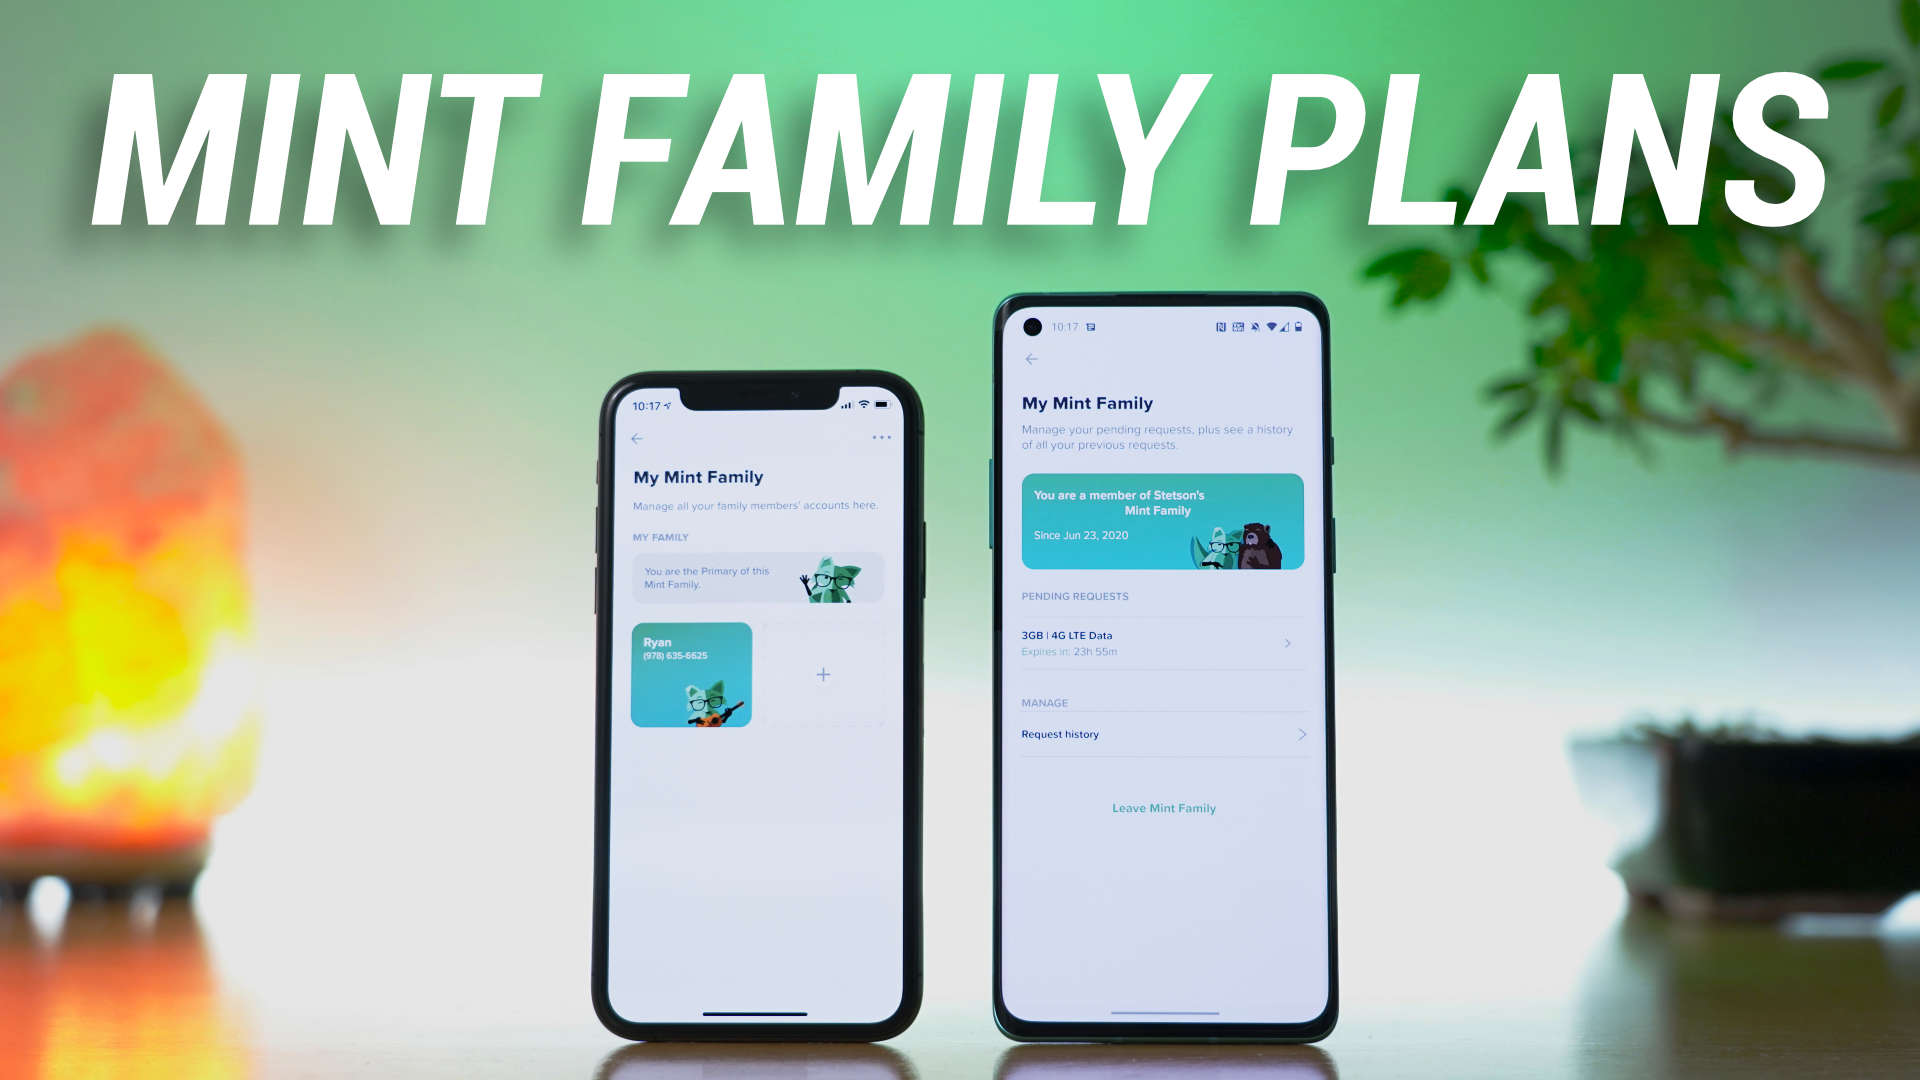 Mint Mobile family plan section of application